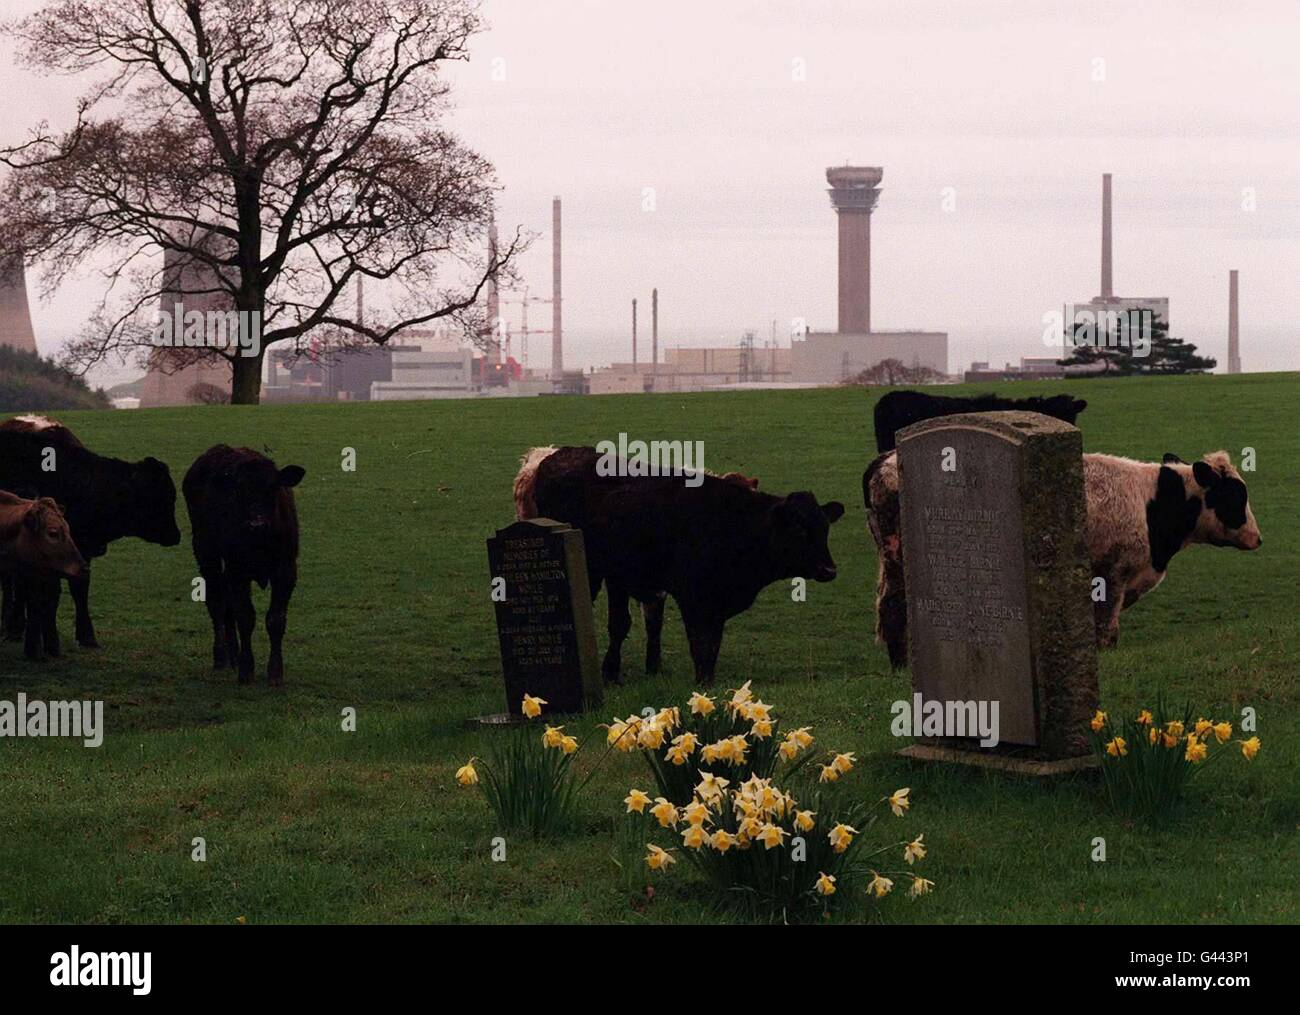 Cattle in graveyard - Stock Image